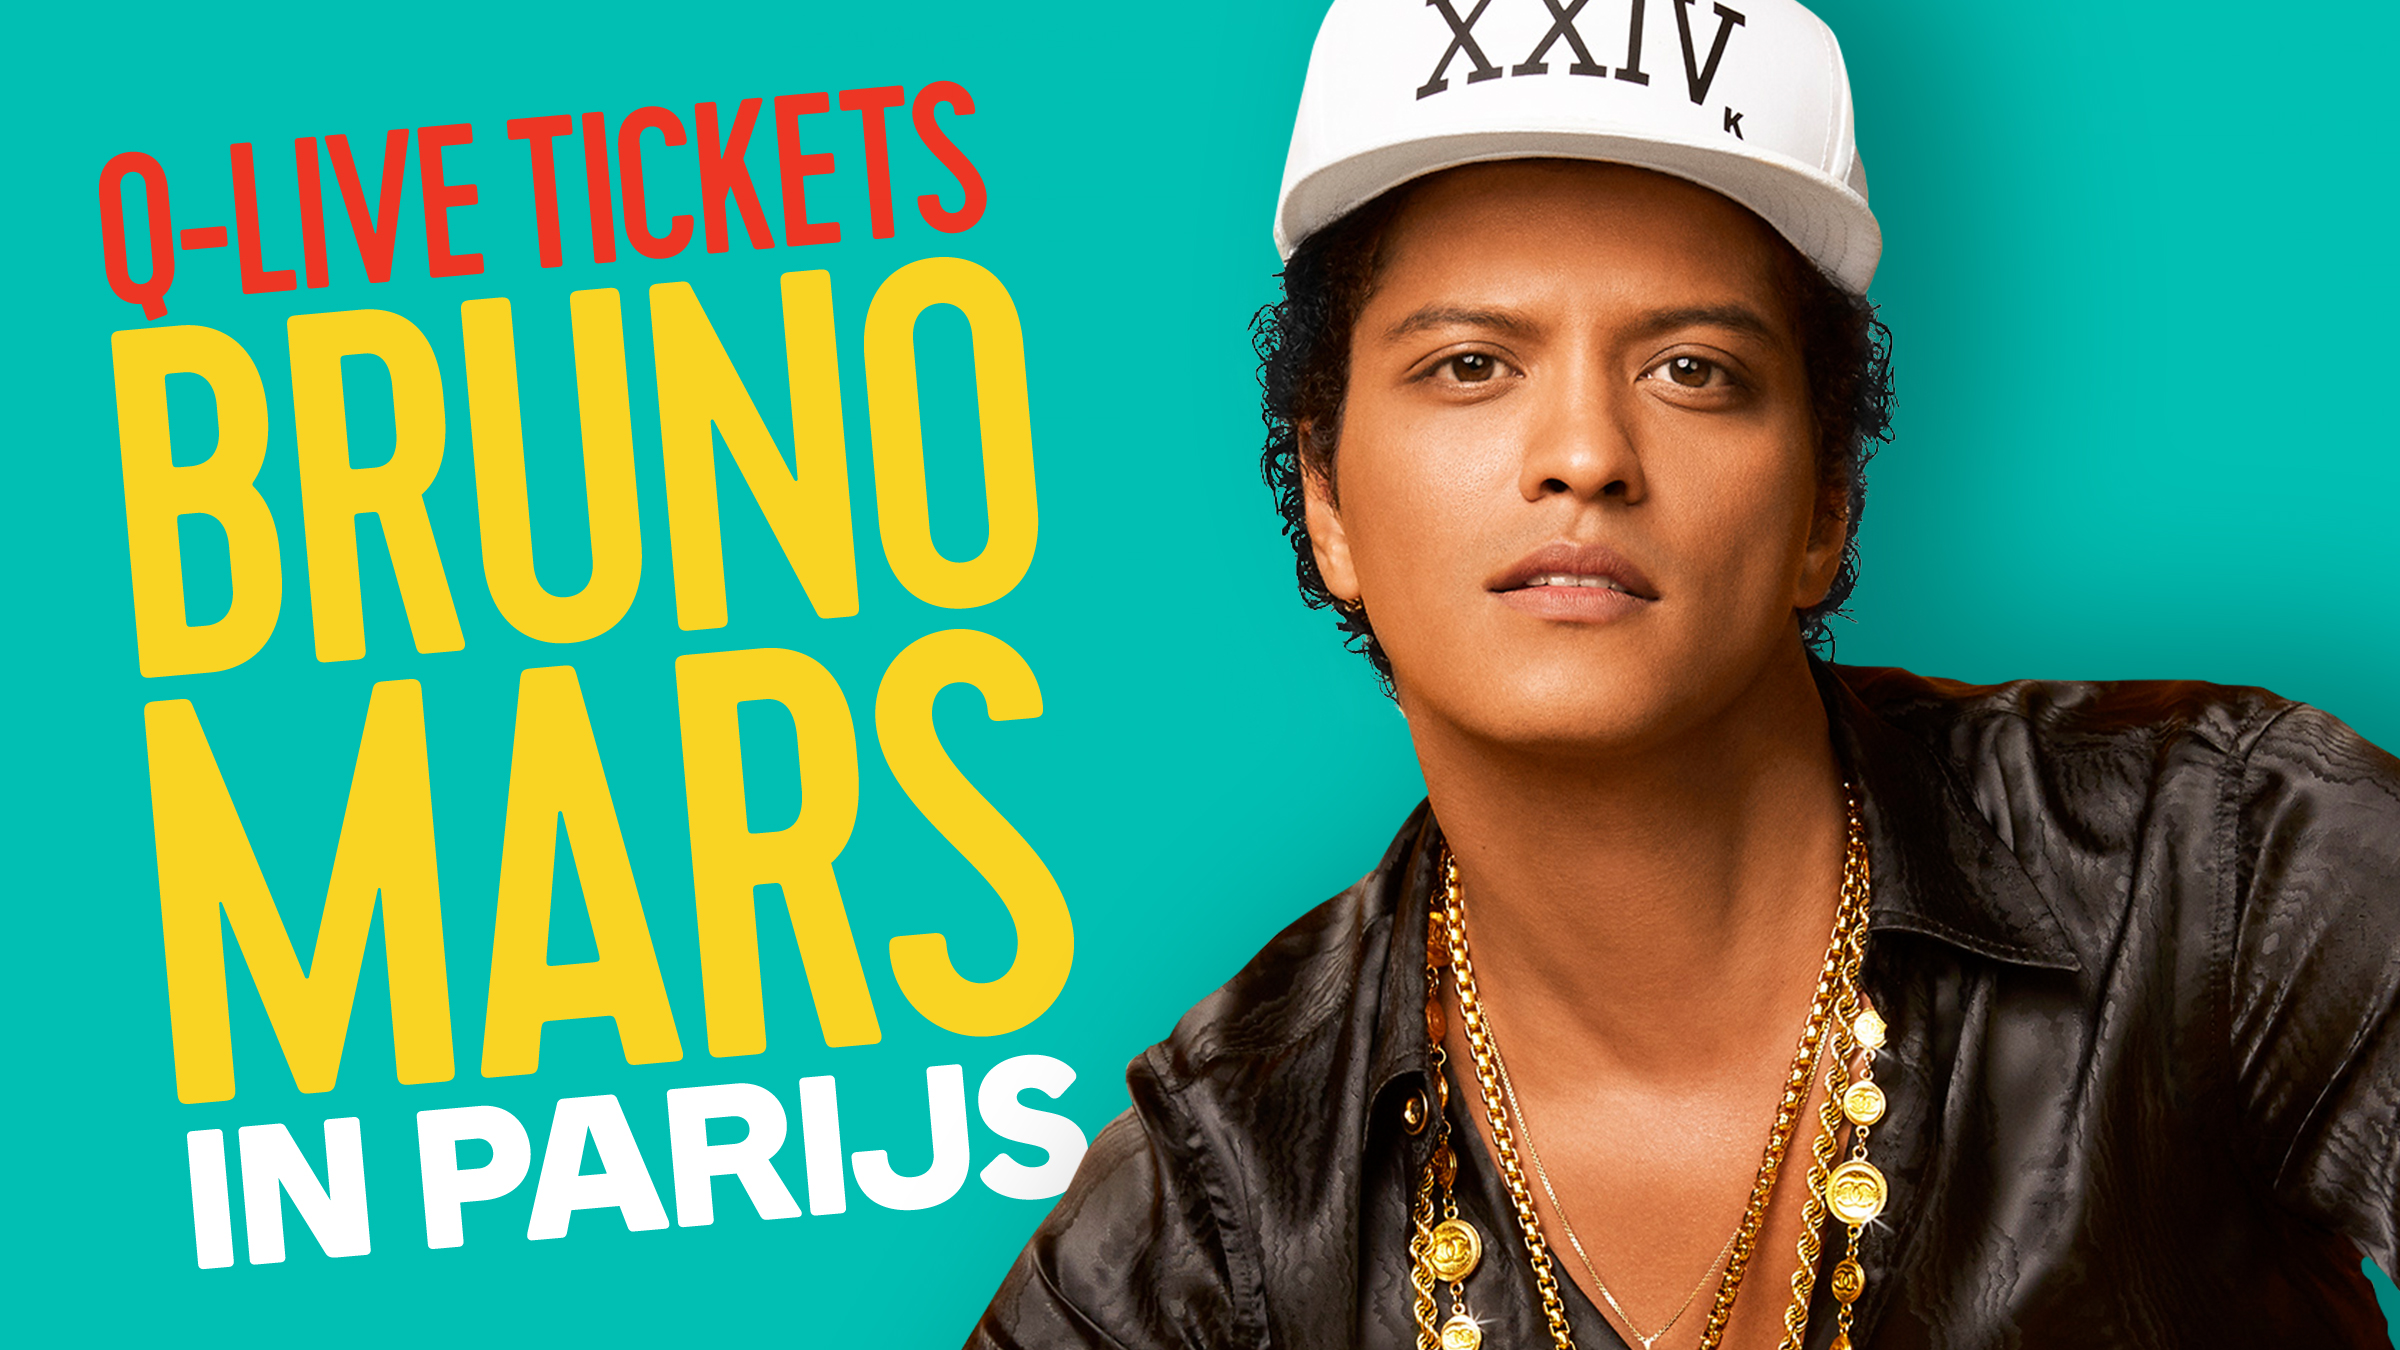 Qmusic teaser bruno